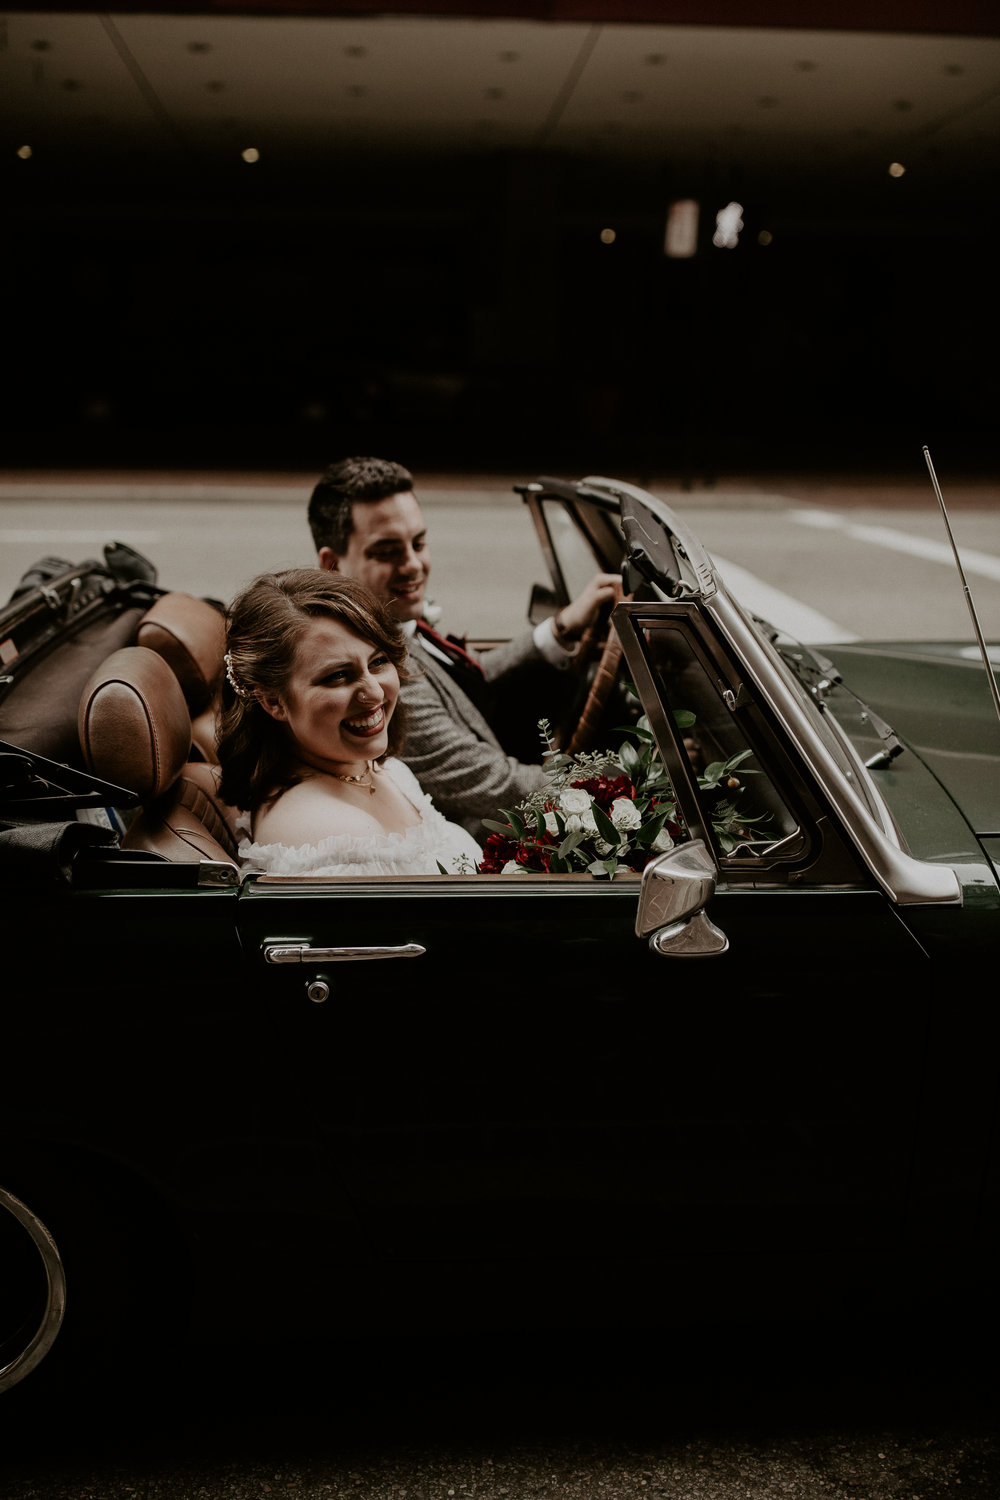 Jaymee_Jake_Vintage_Wedding_Cincinnati-EDIT-46.JPG